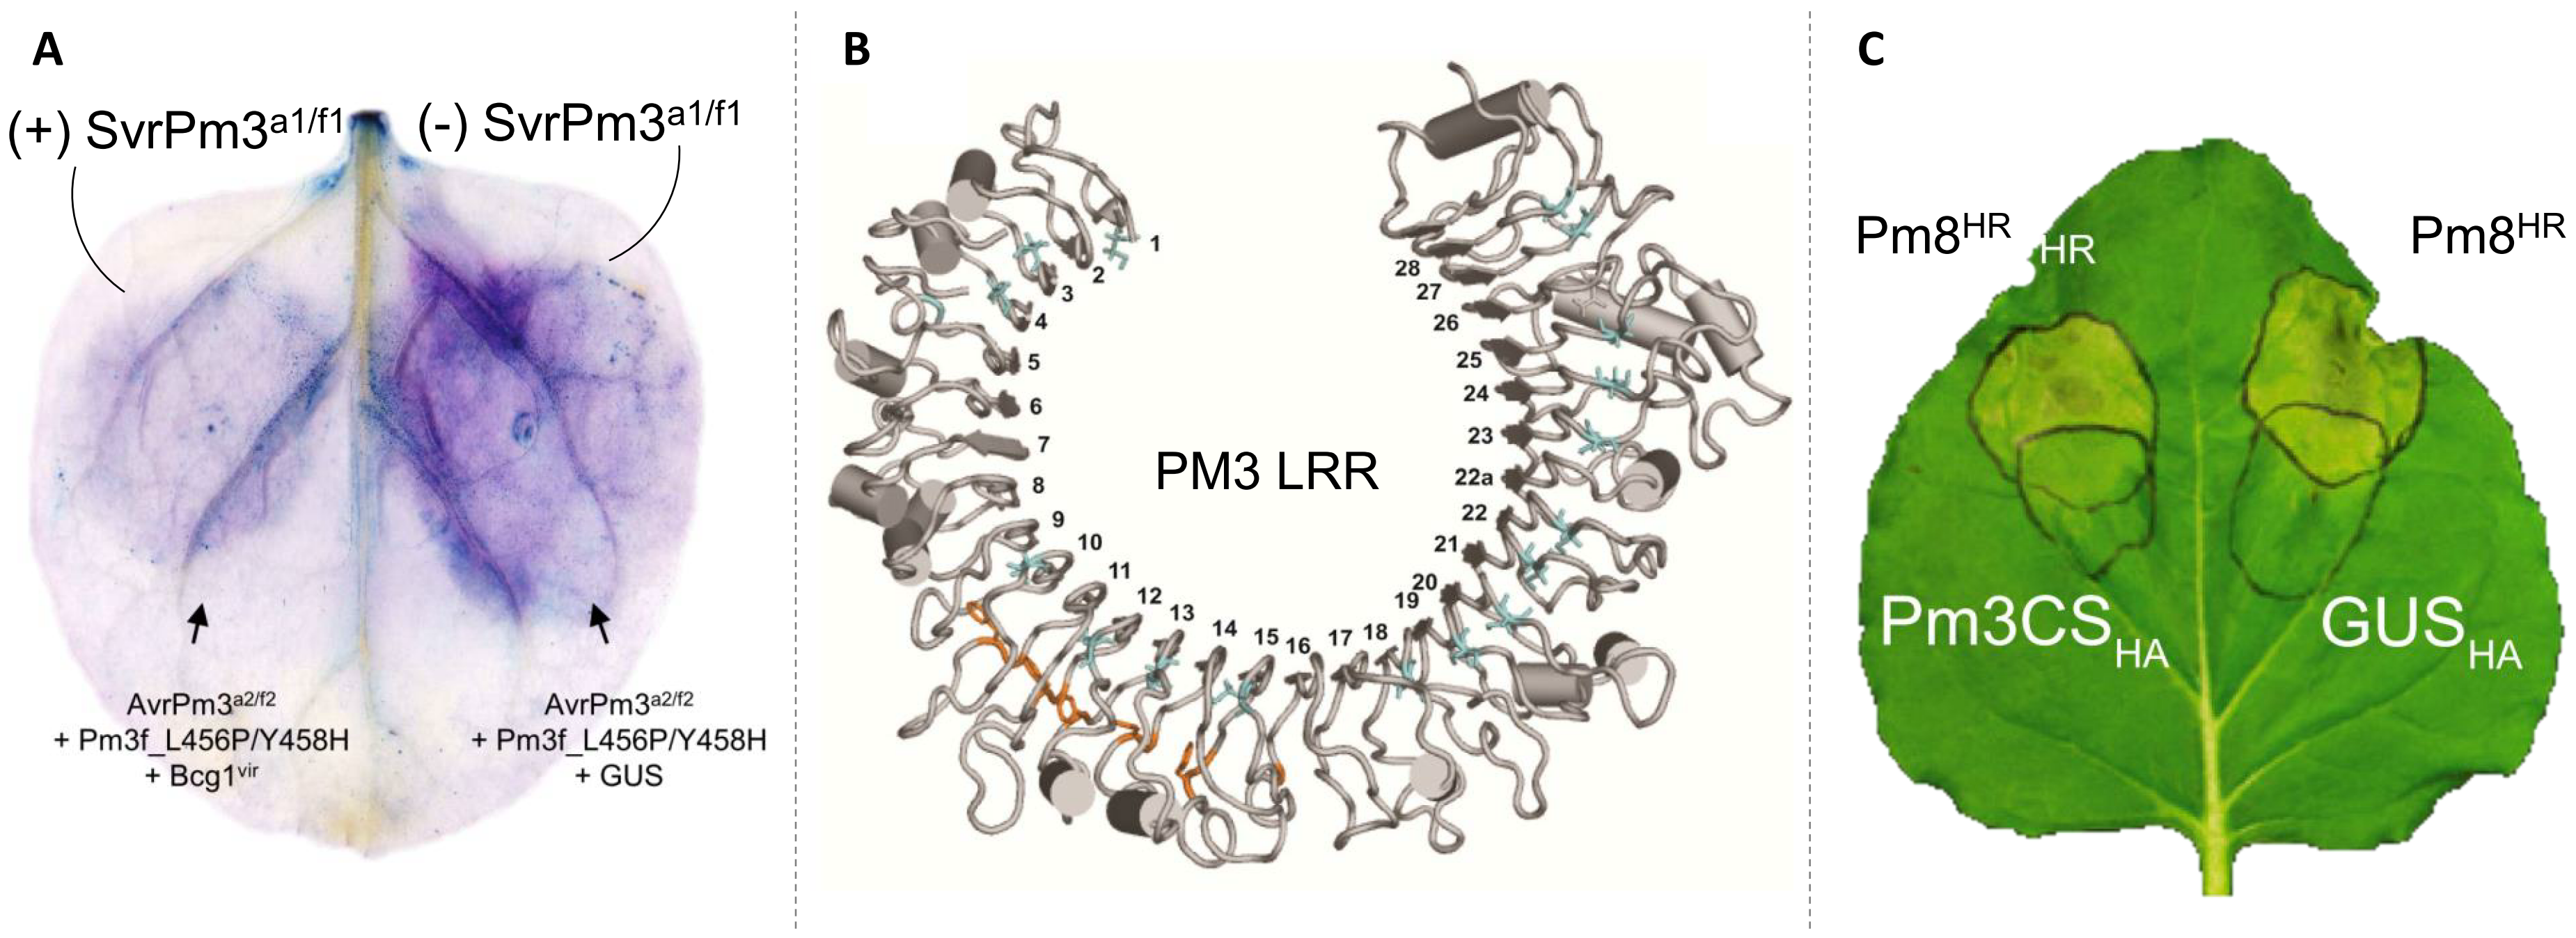 (A) Suppression of the AvrPm3a2/f2-Pm3f mediated hypersensitive cell death response (revealed by Trypan blues staining) in presence of the SvrPm3a1/f1 suppressor; (B) 3D computational modelling reveals a horse-shoe structure of the leucine-rich-repeats (LRR) region of the PM3 resistance protein; (C) Suppression of the hypersensitive cell death response mediated by the auto-activated Pm8 resistance gene in presence of the susceptible allele of the Pm3 resistance gene (Pm3CS).